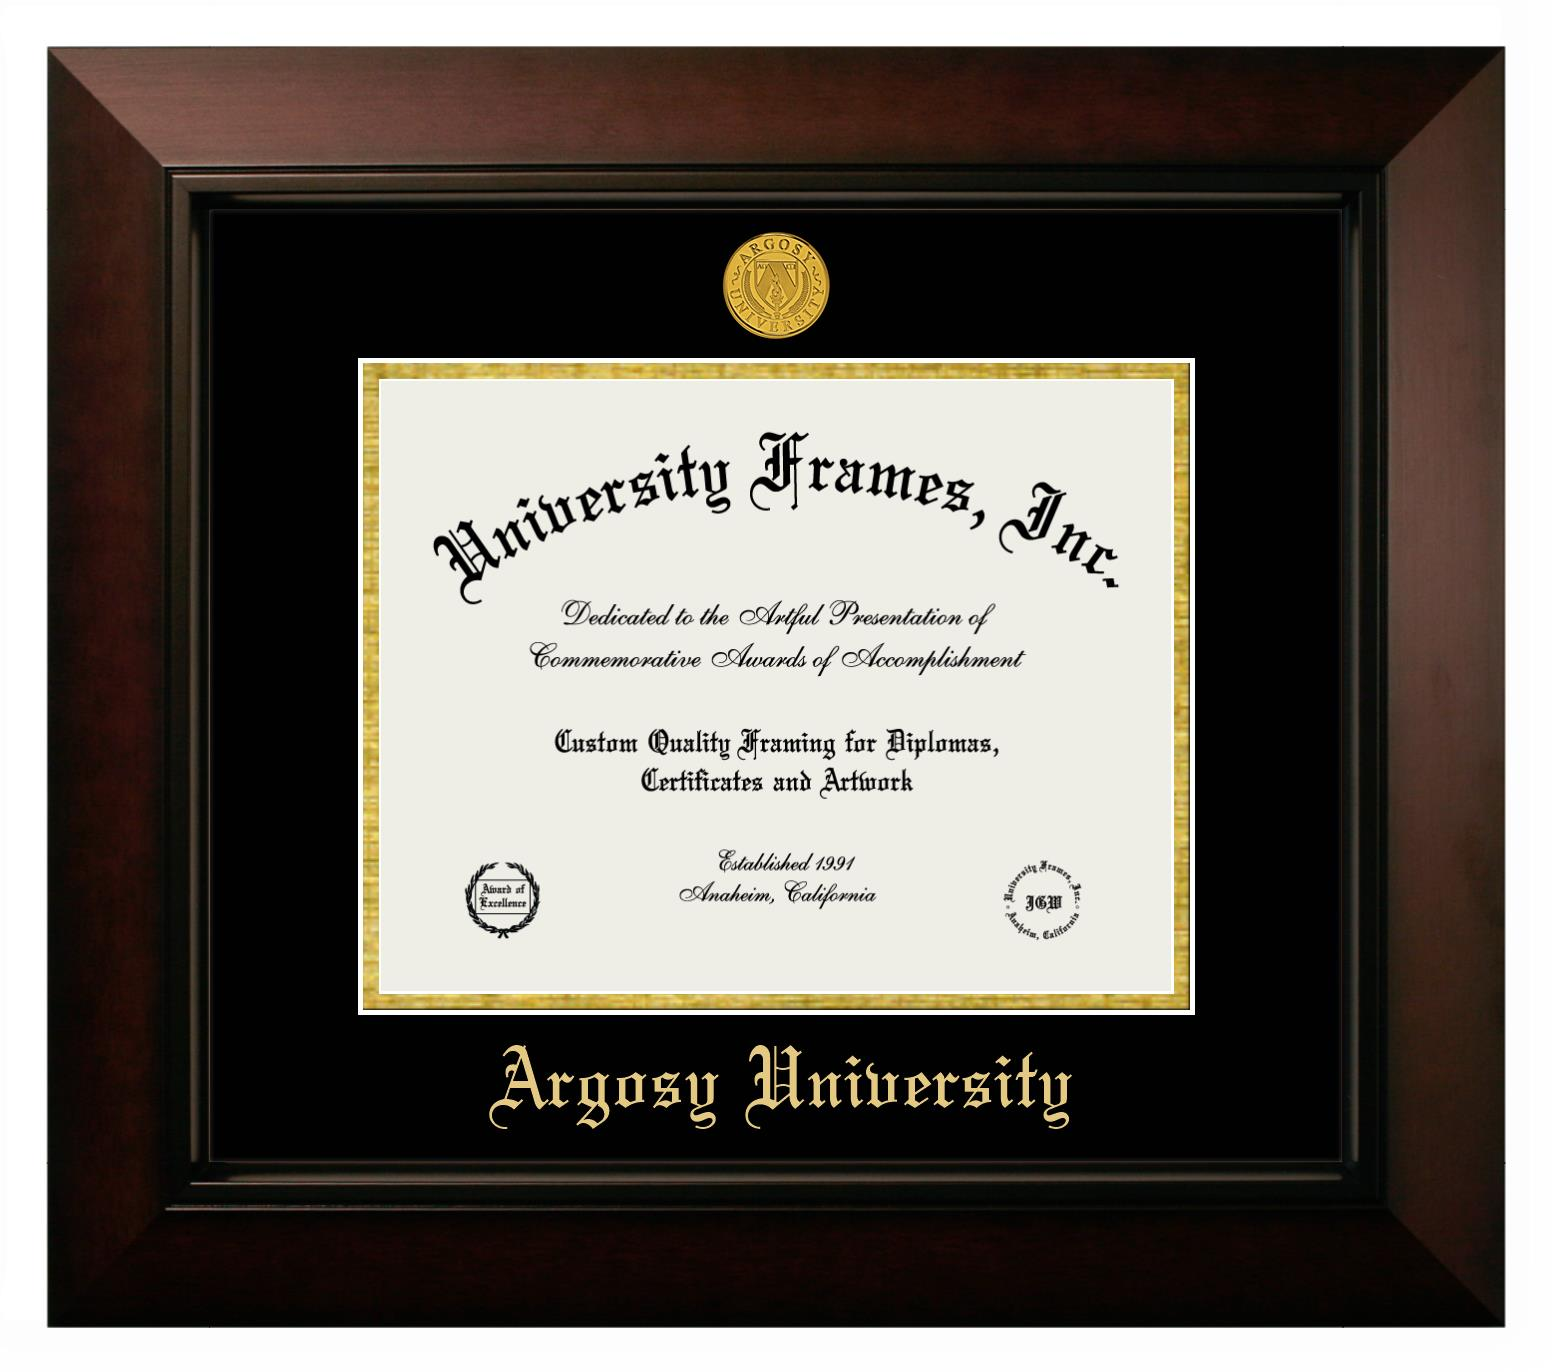 Argosy University Diploma Frame In Legacy Black Cherry With Black Gold Mats